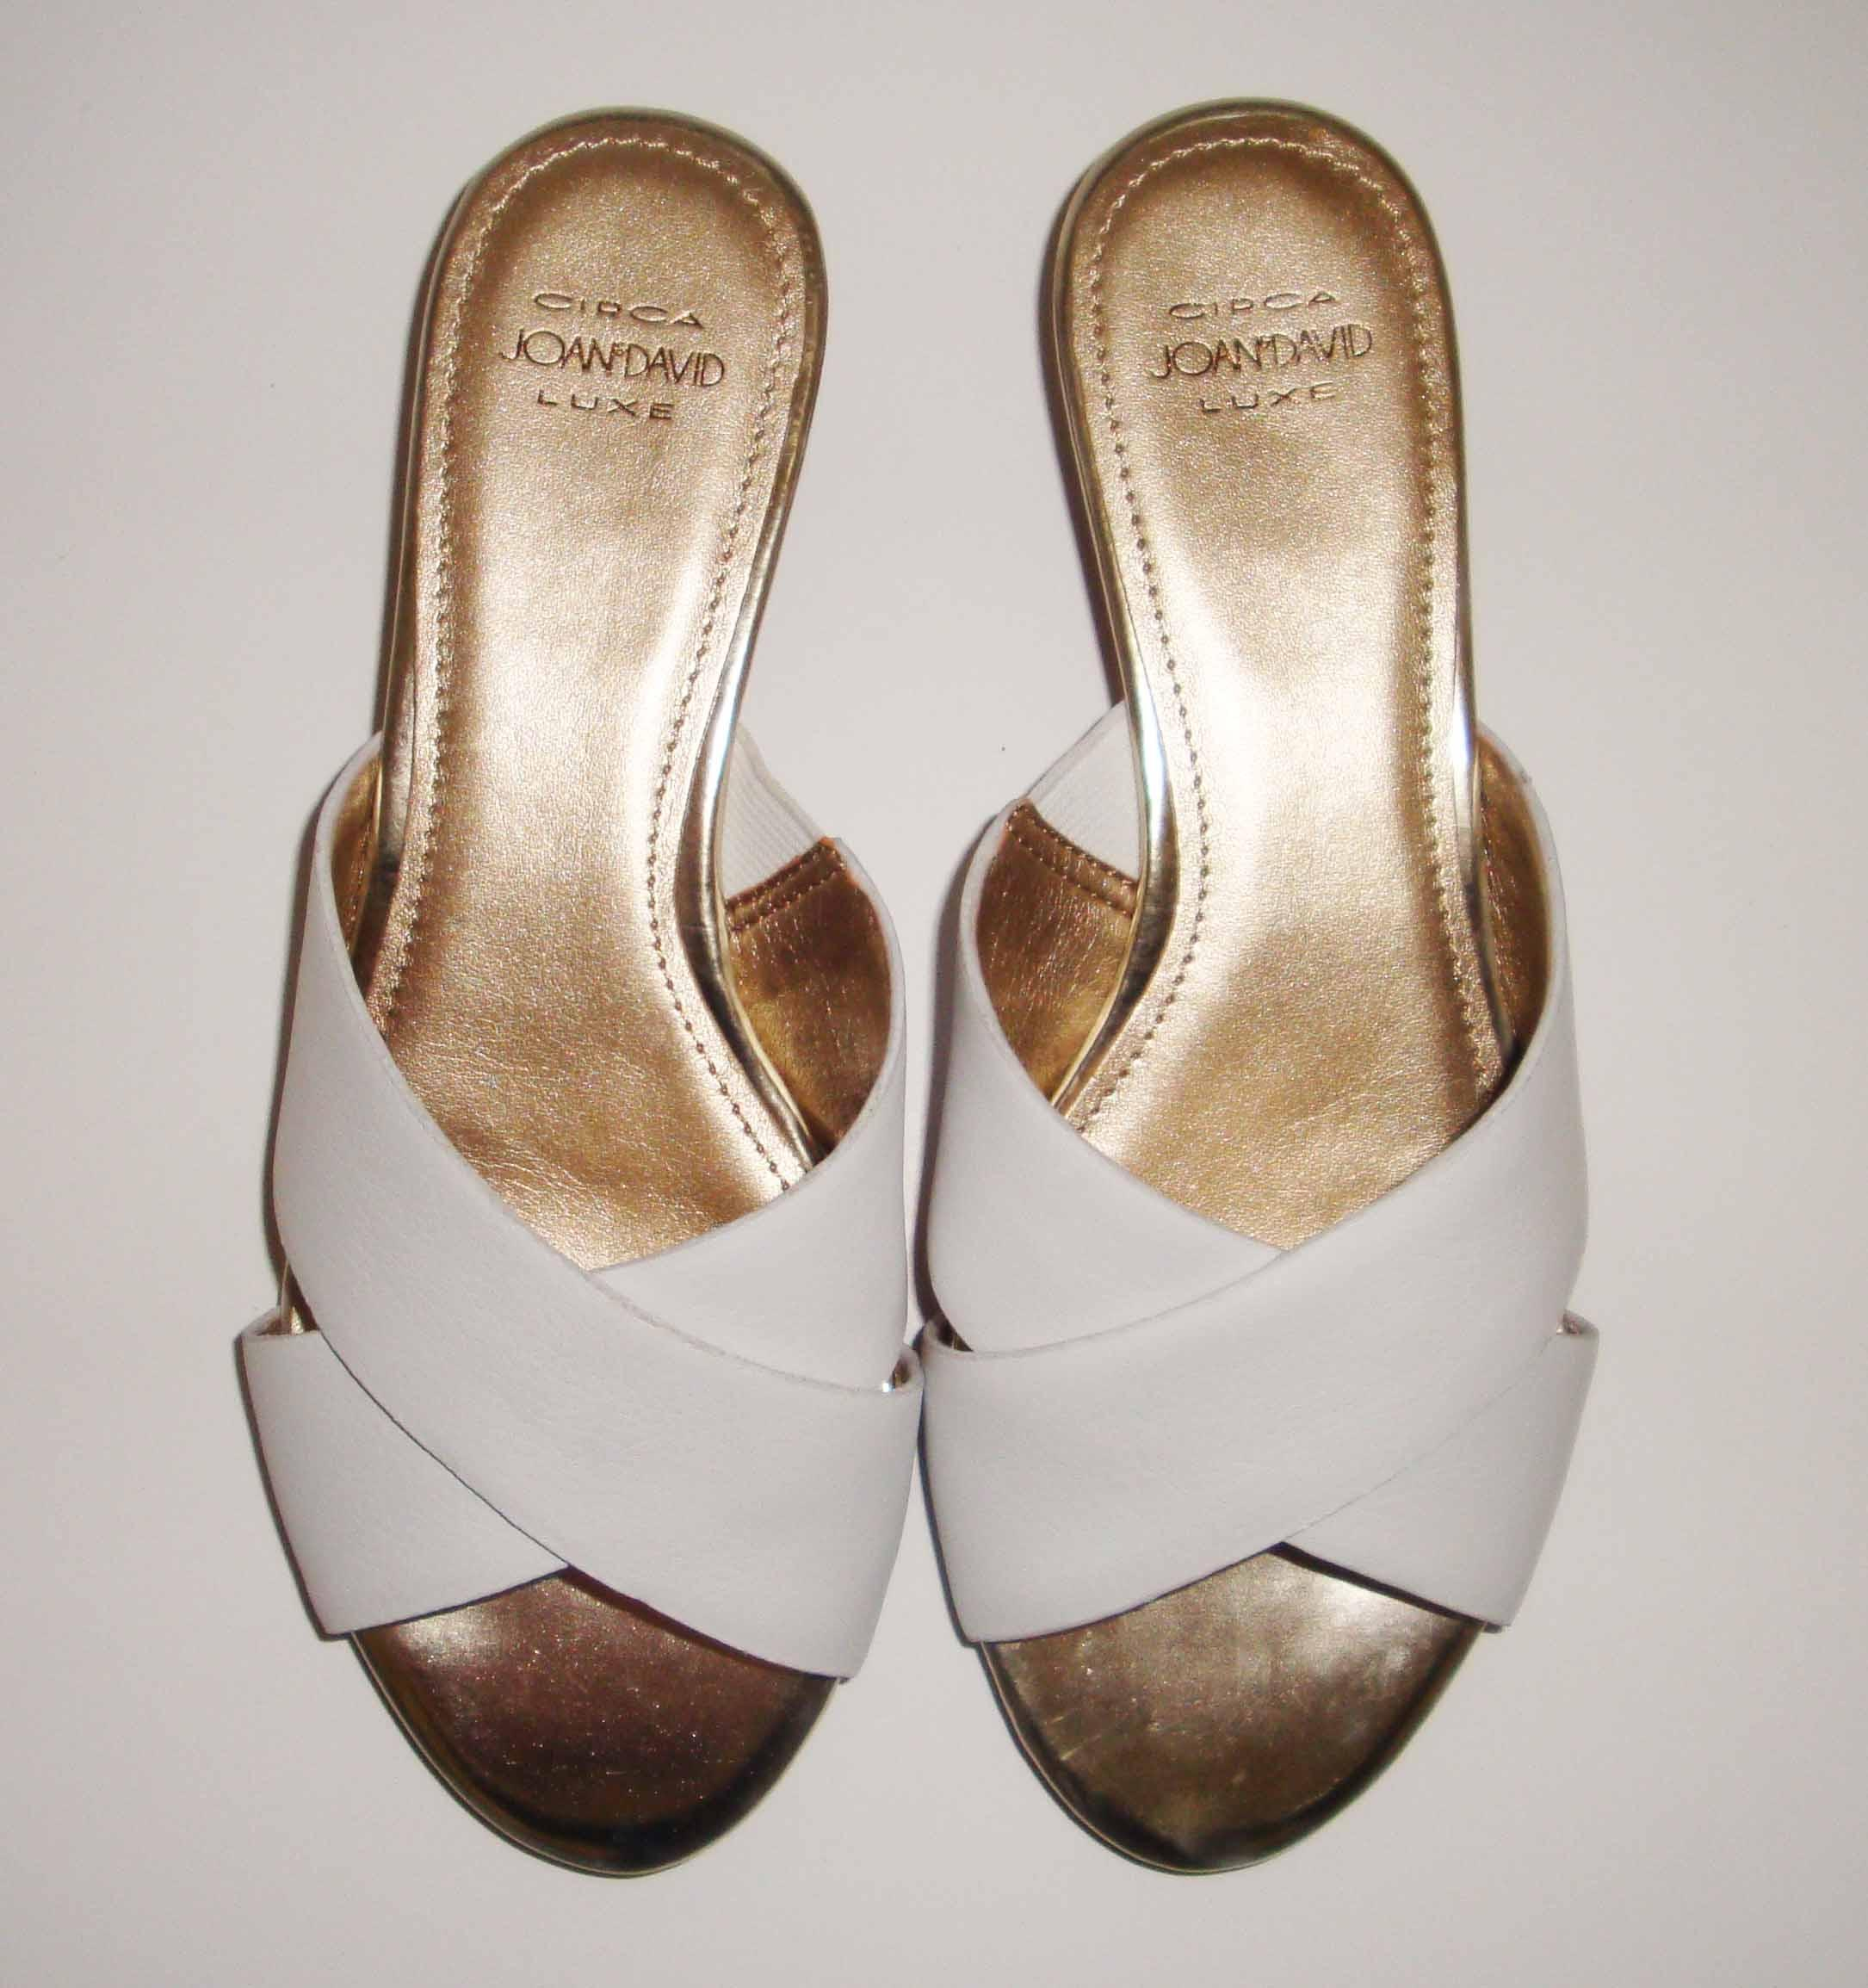 27882b2f837 ... Circa Joan & David White White White Leather Sandals Size US 6 Regular  (M, ...